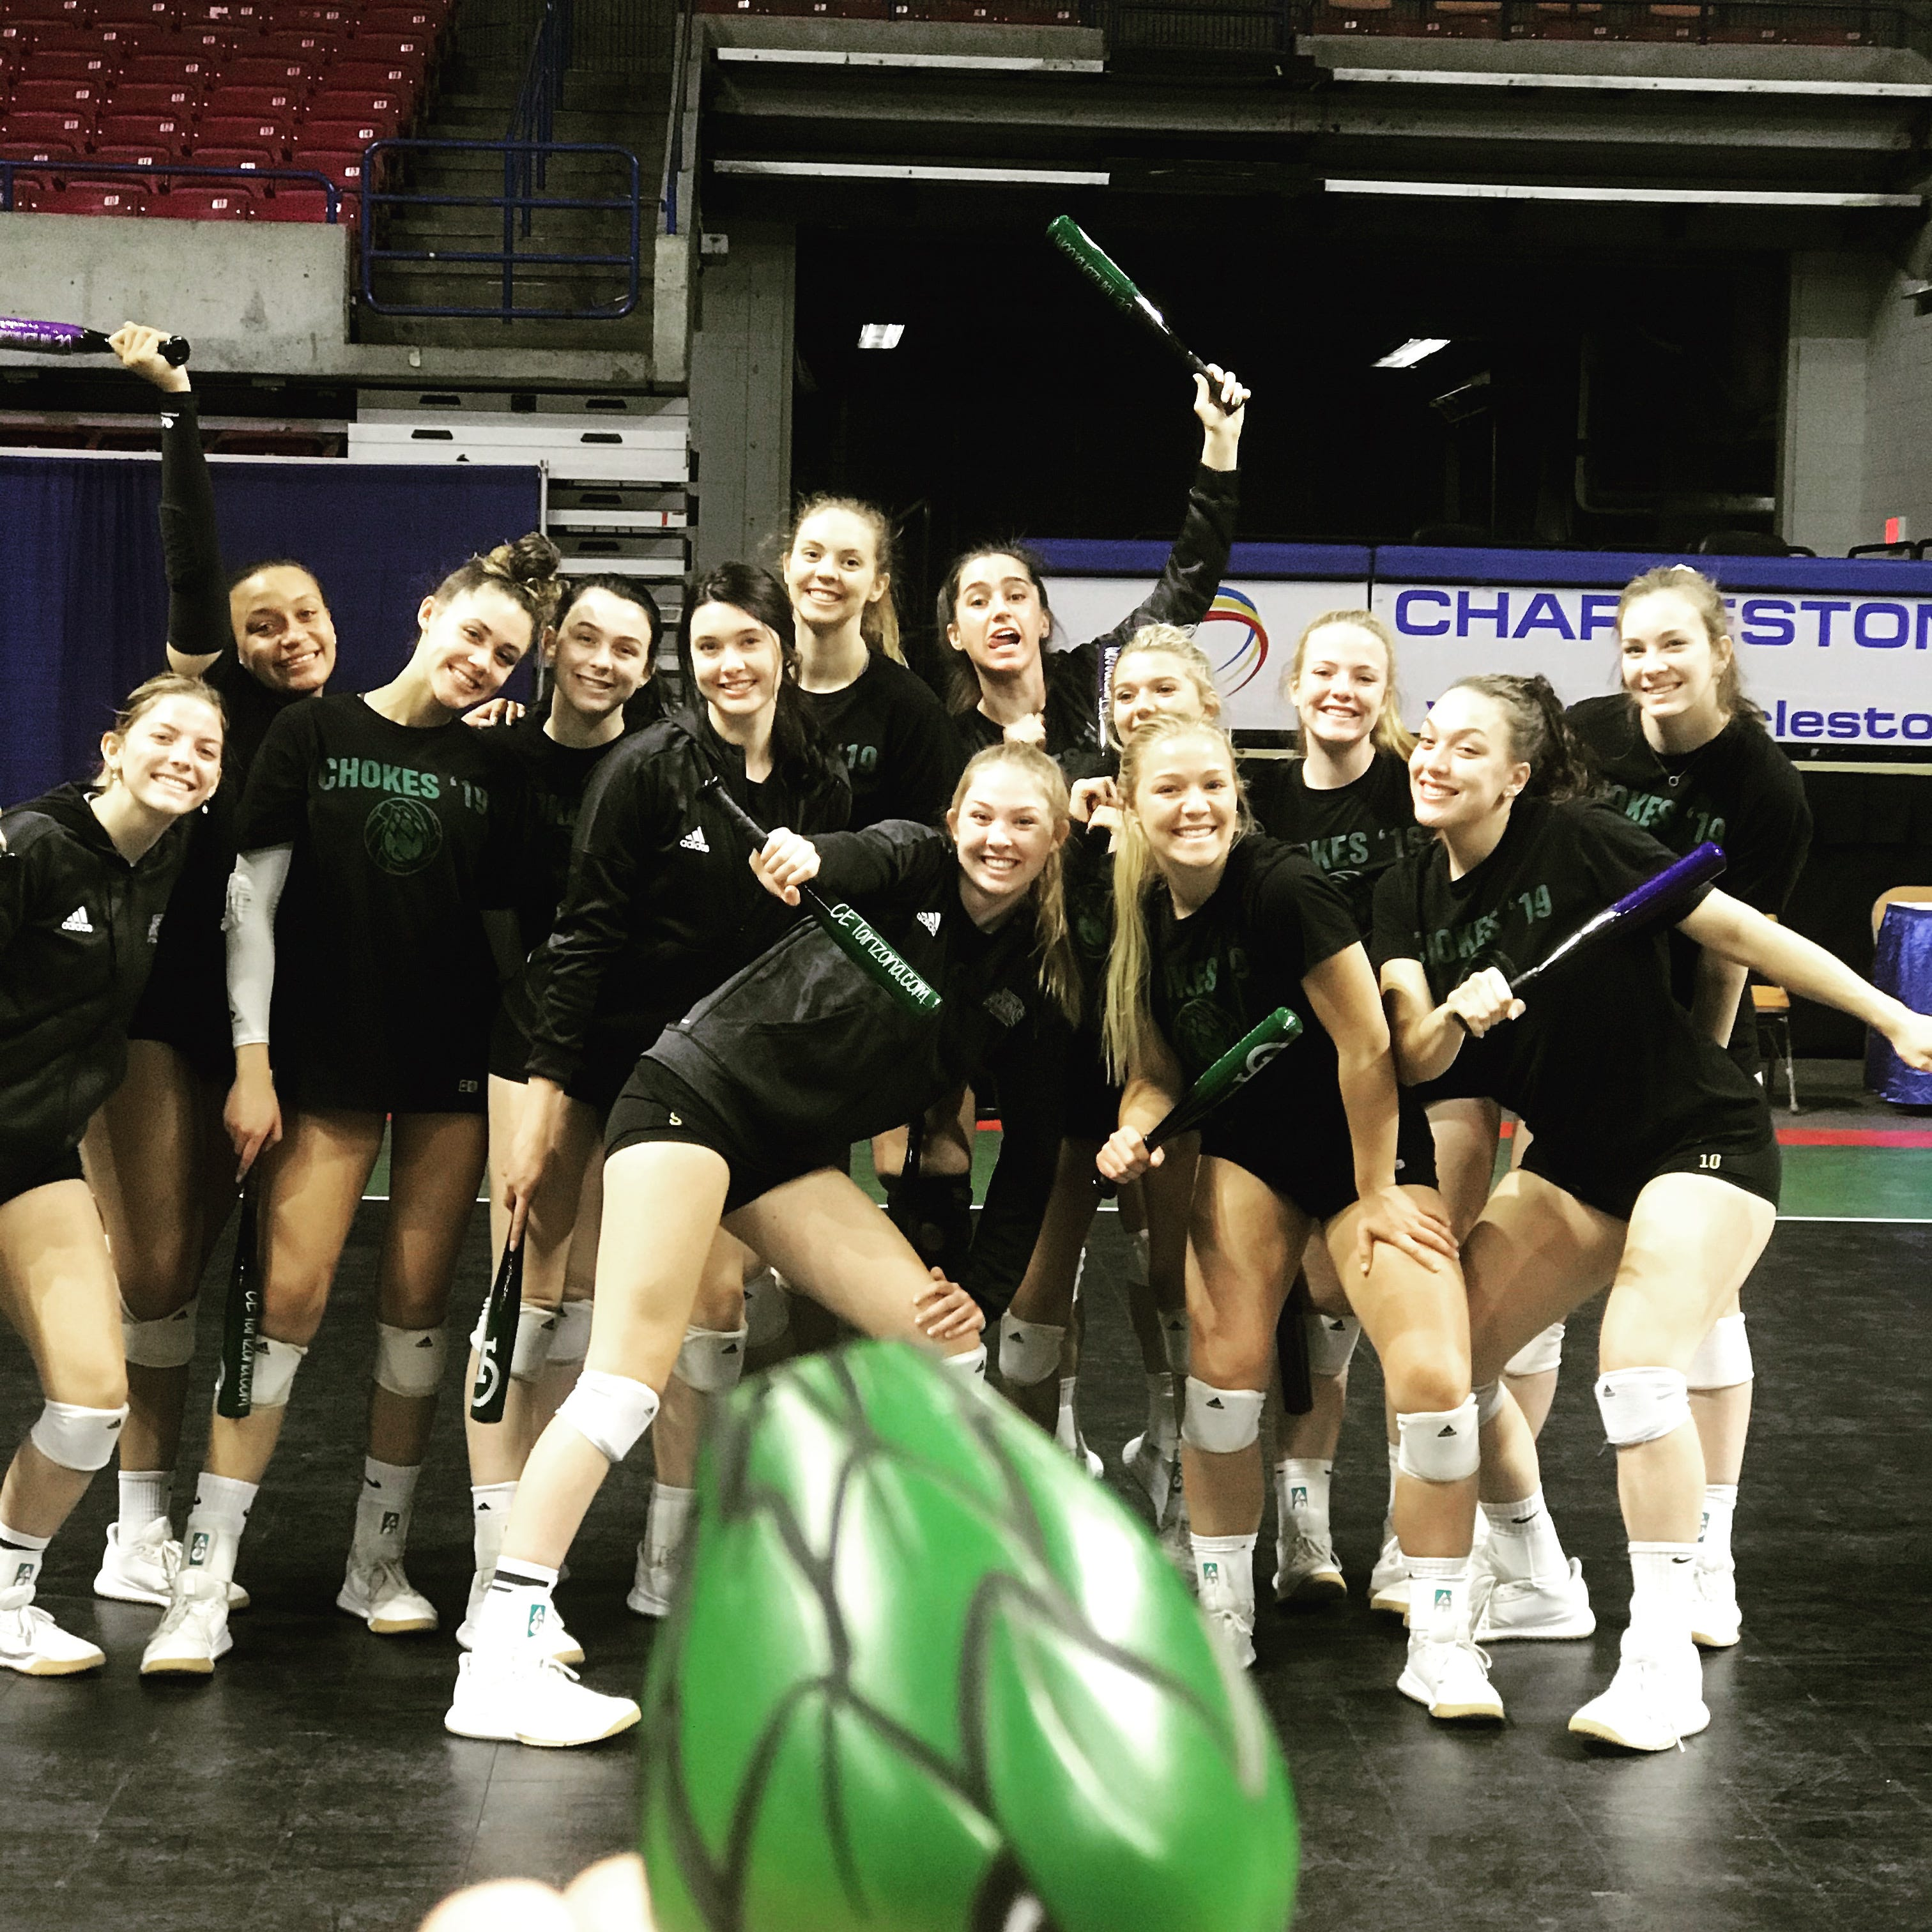 Scc Women Volleyball Players Want To Save Season Defend Title